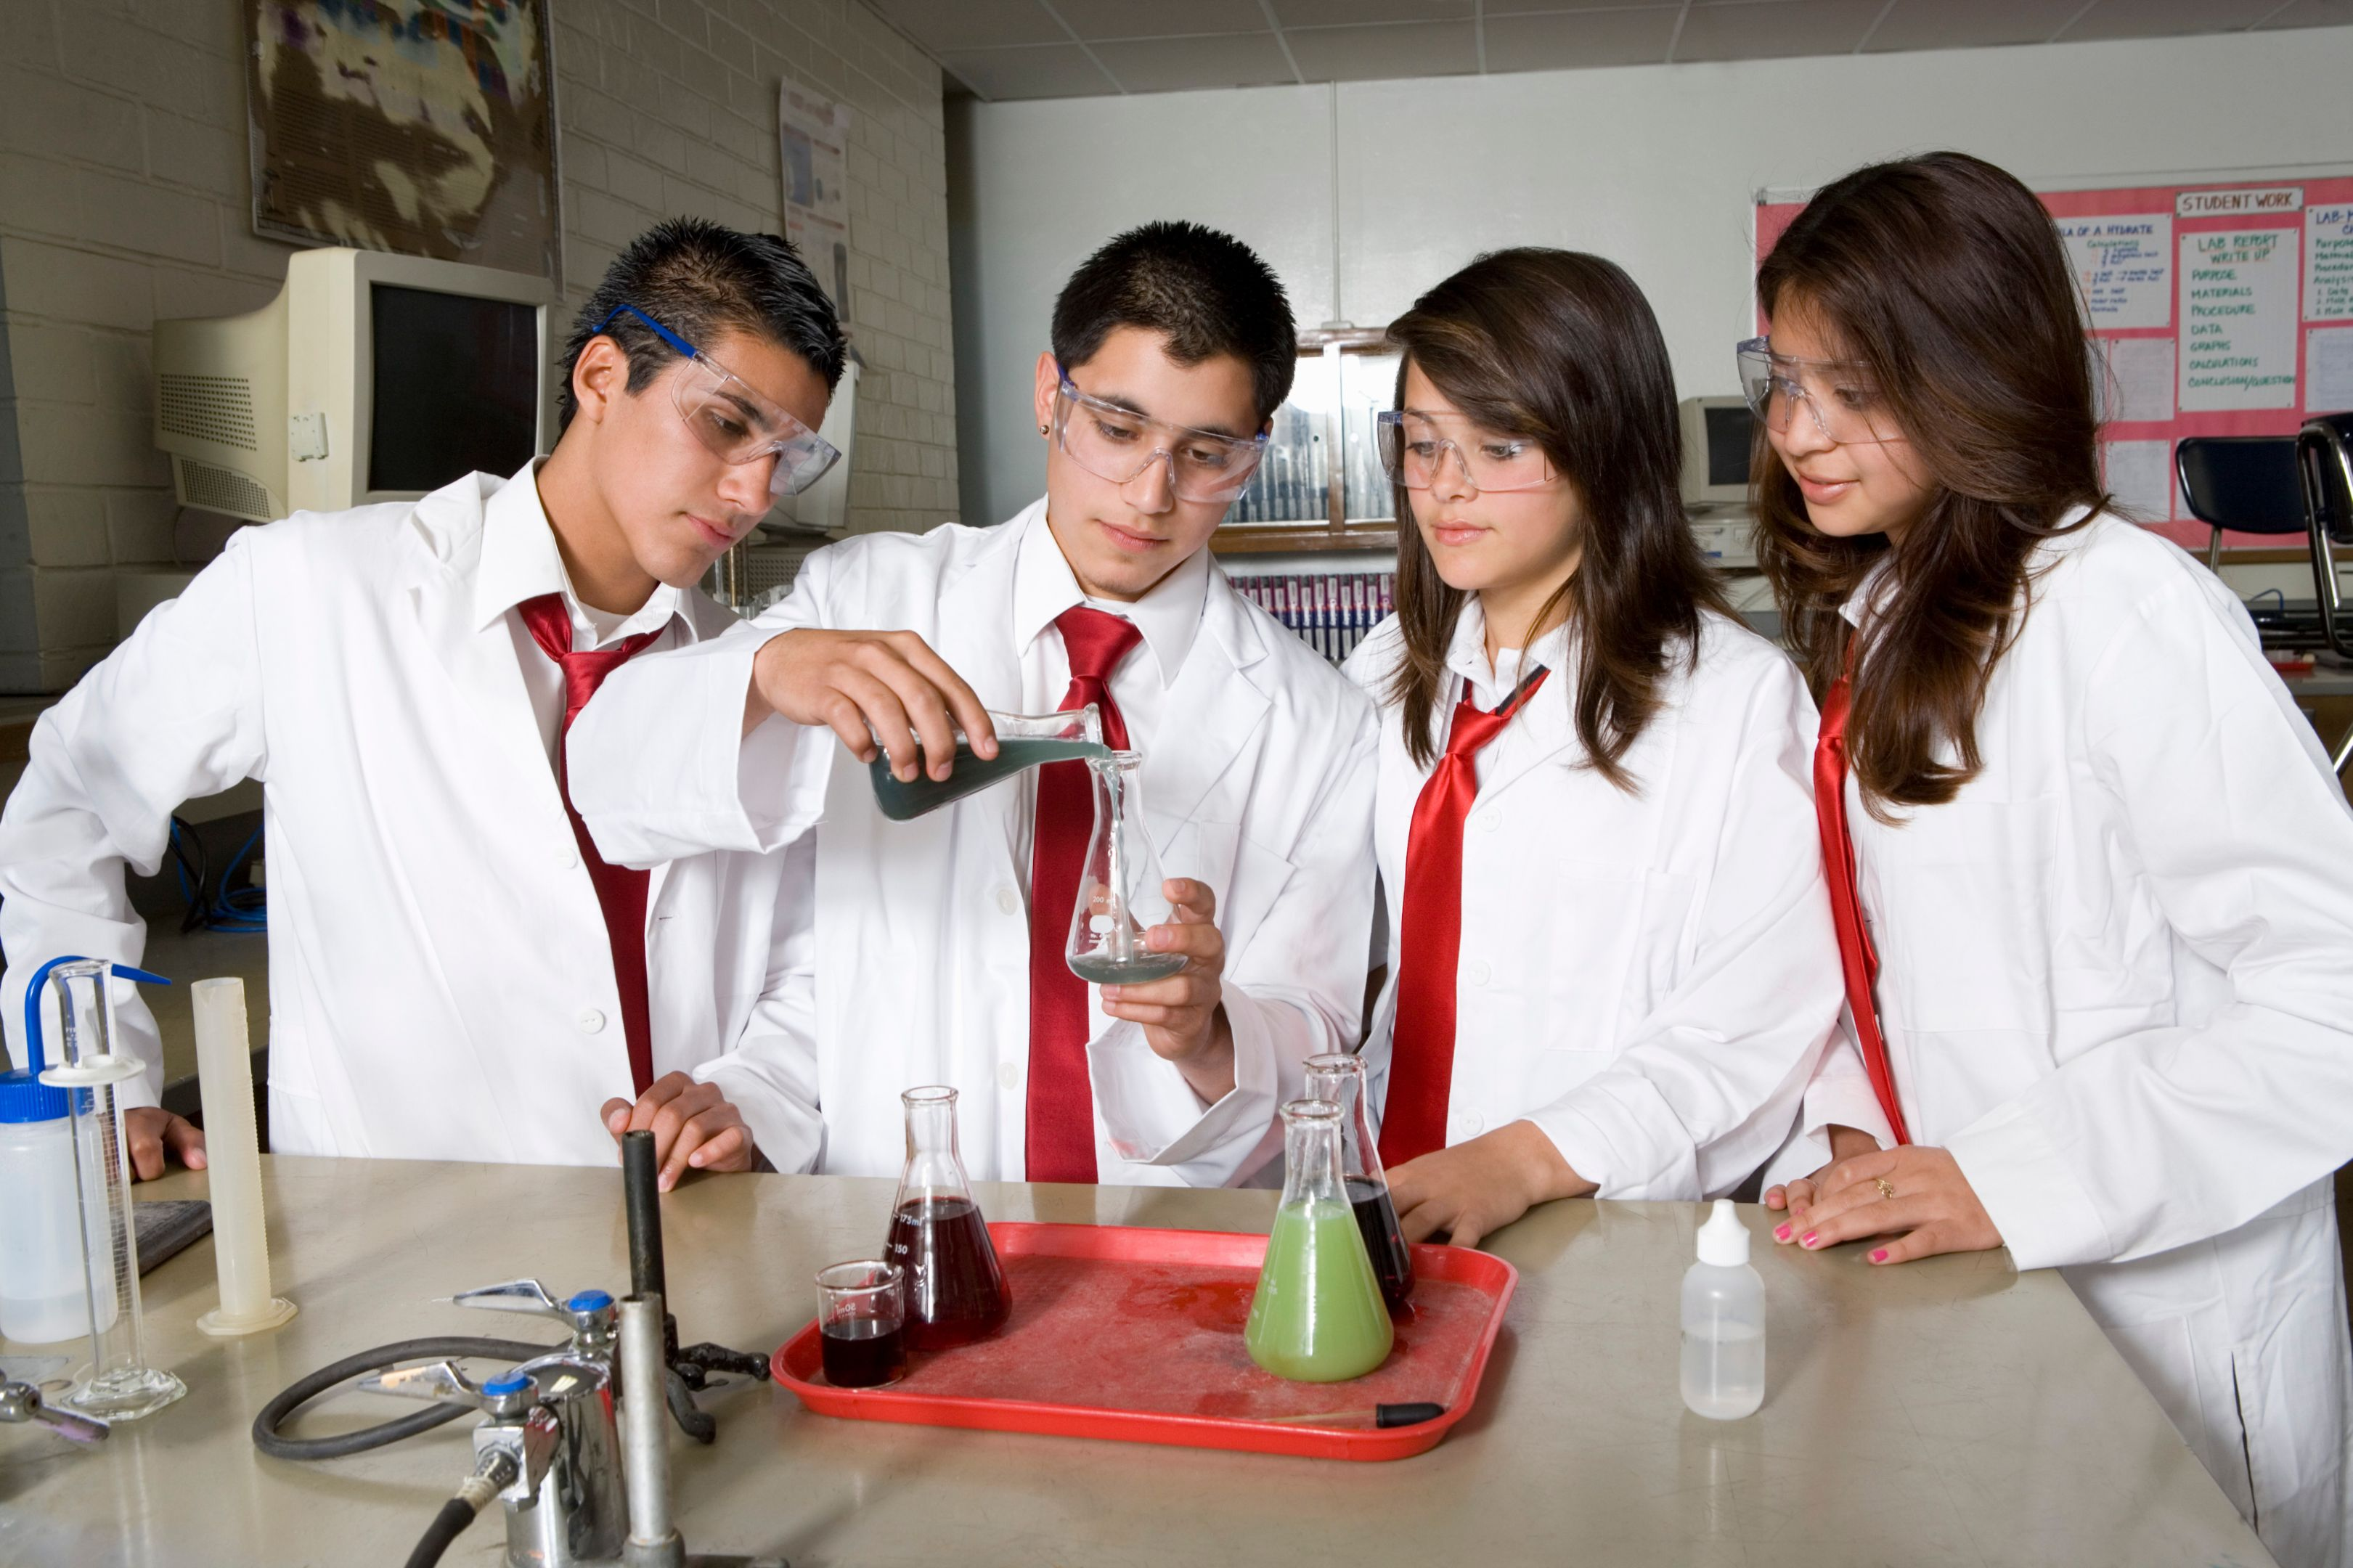 High school students conducting a science experiment.